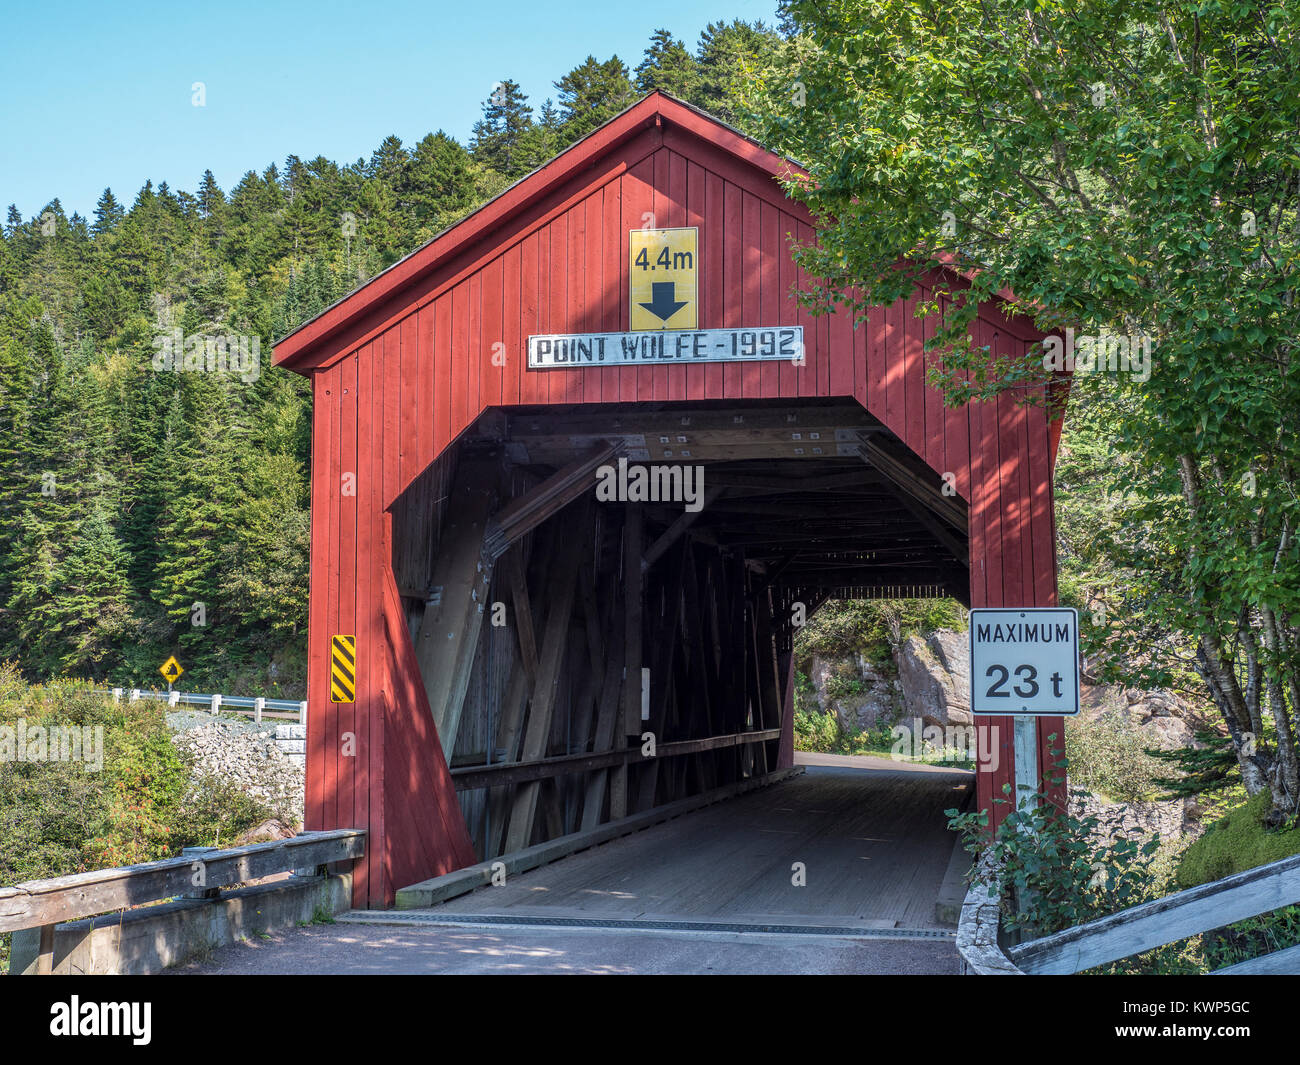 Point Wolfe covered Bridge, Fundy National Park, Bay of Fundy, New Brunswick, Canada. - Stock Image